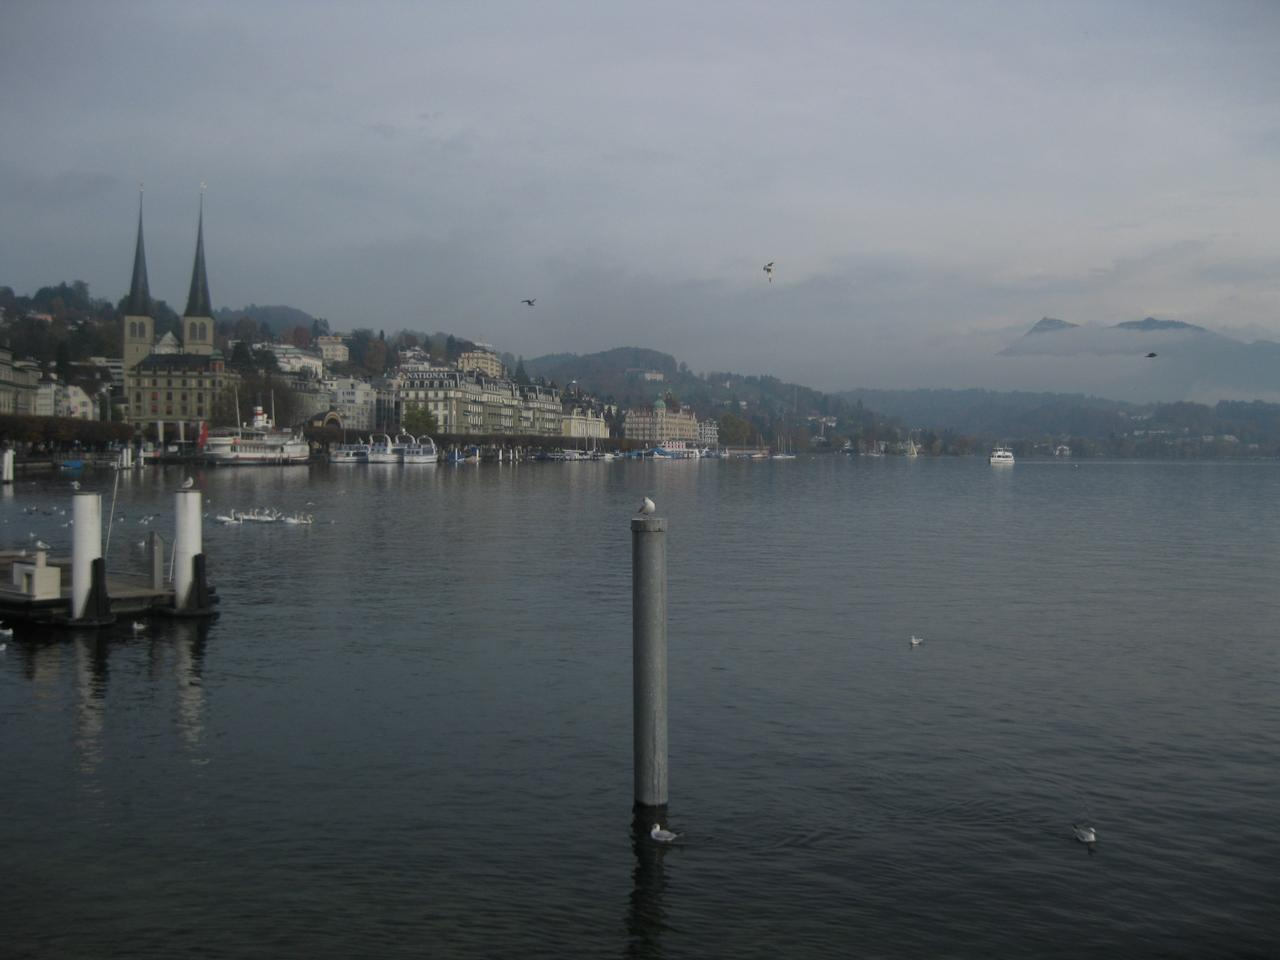 ../galleries/Luzern/IMG_5408.JPG